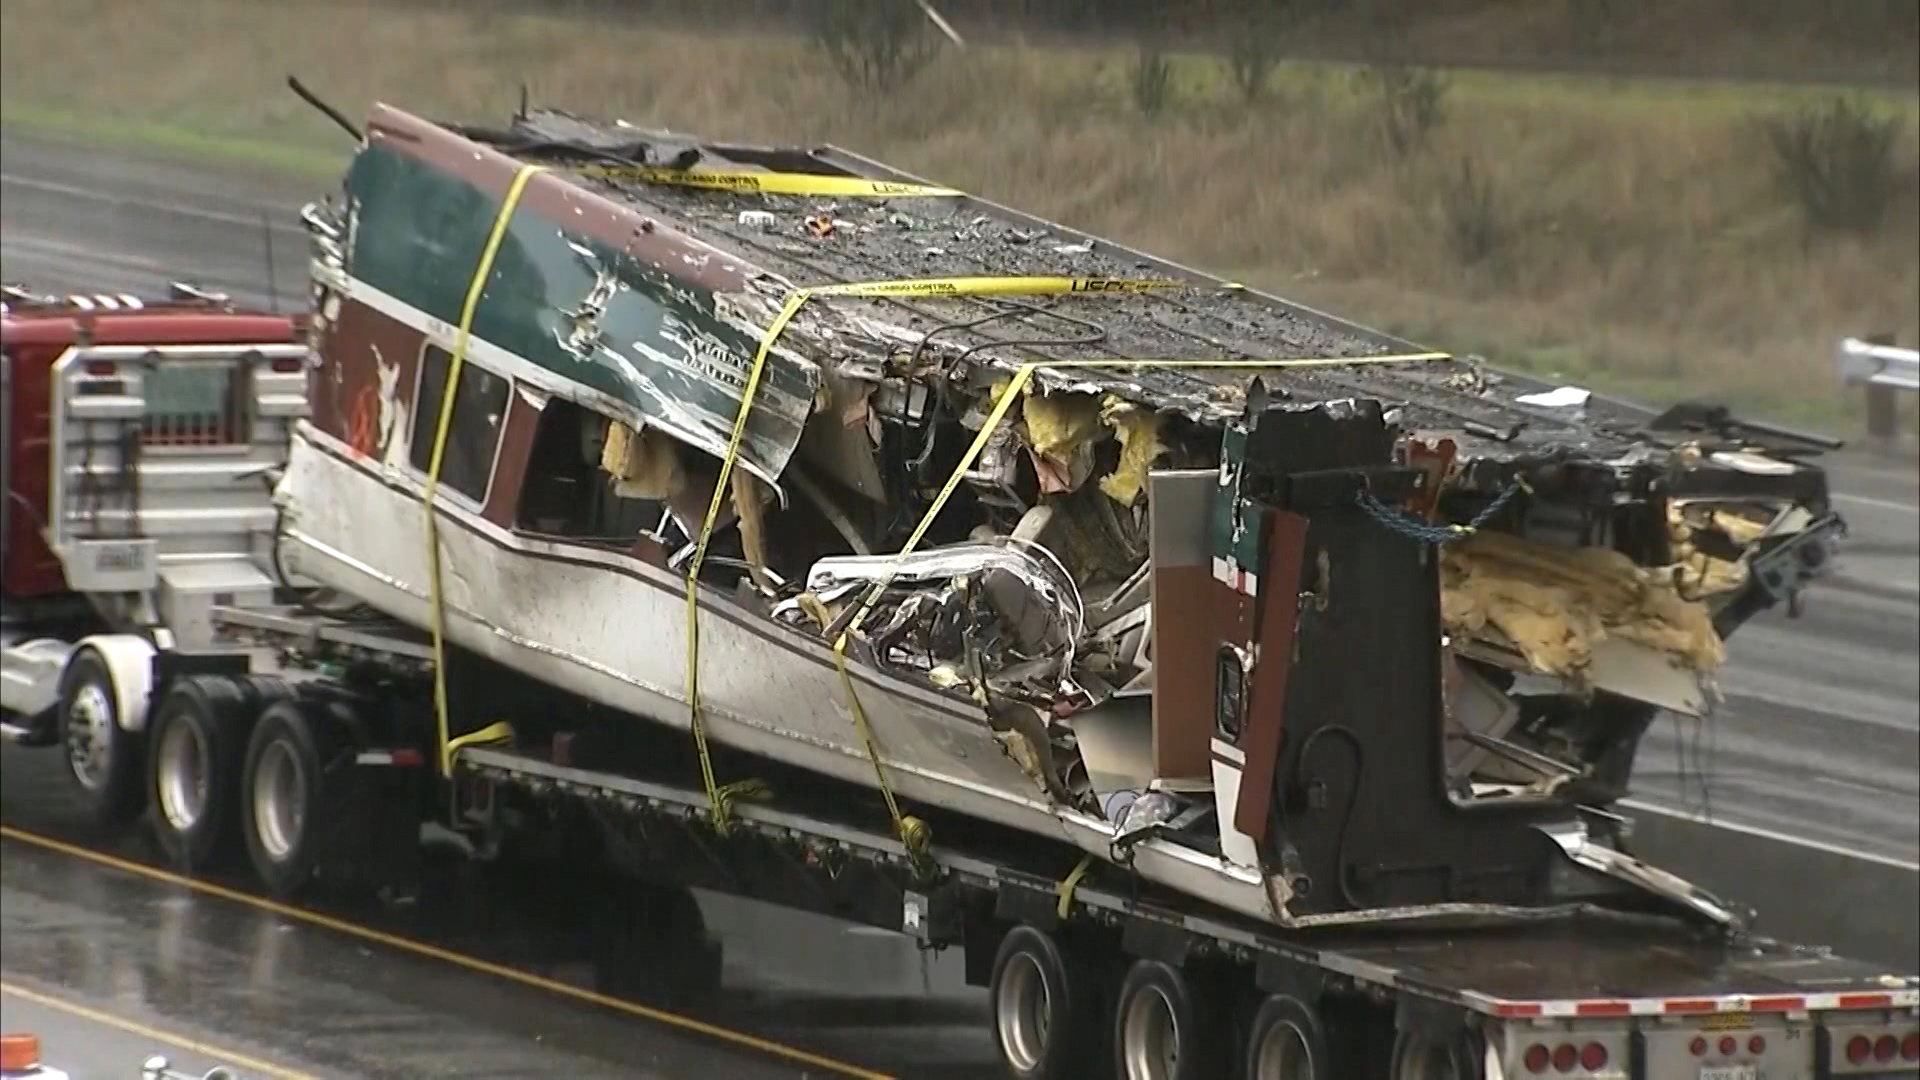 Inside the wrecked Amtrak train in Washington state